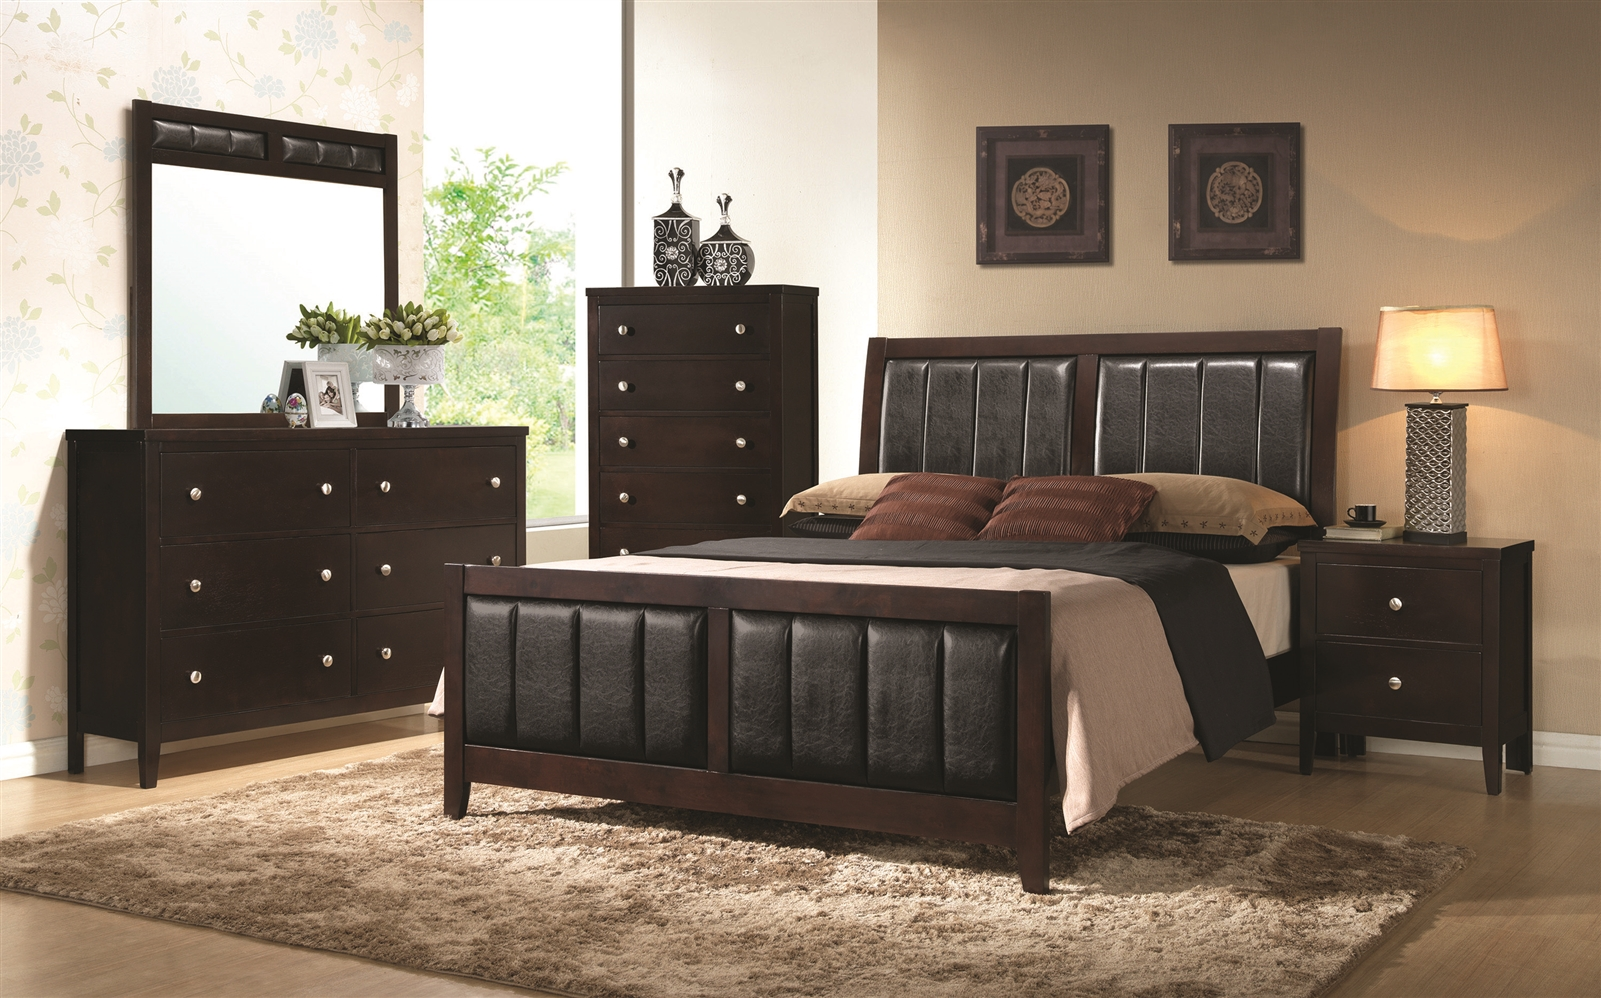 Clay Collection Contemporary Queen Bed with Upholstered Headboard